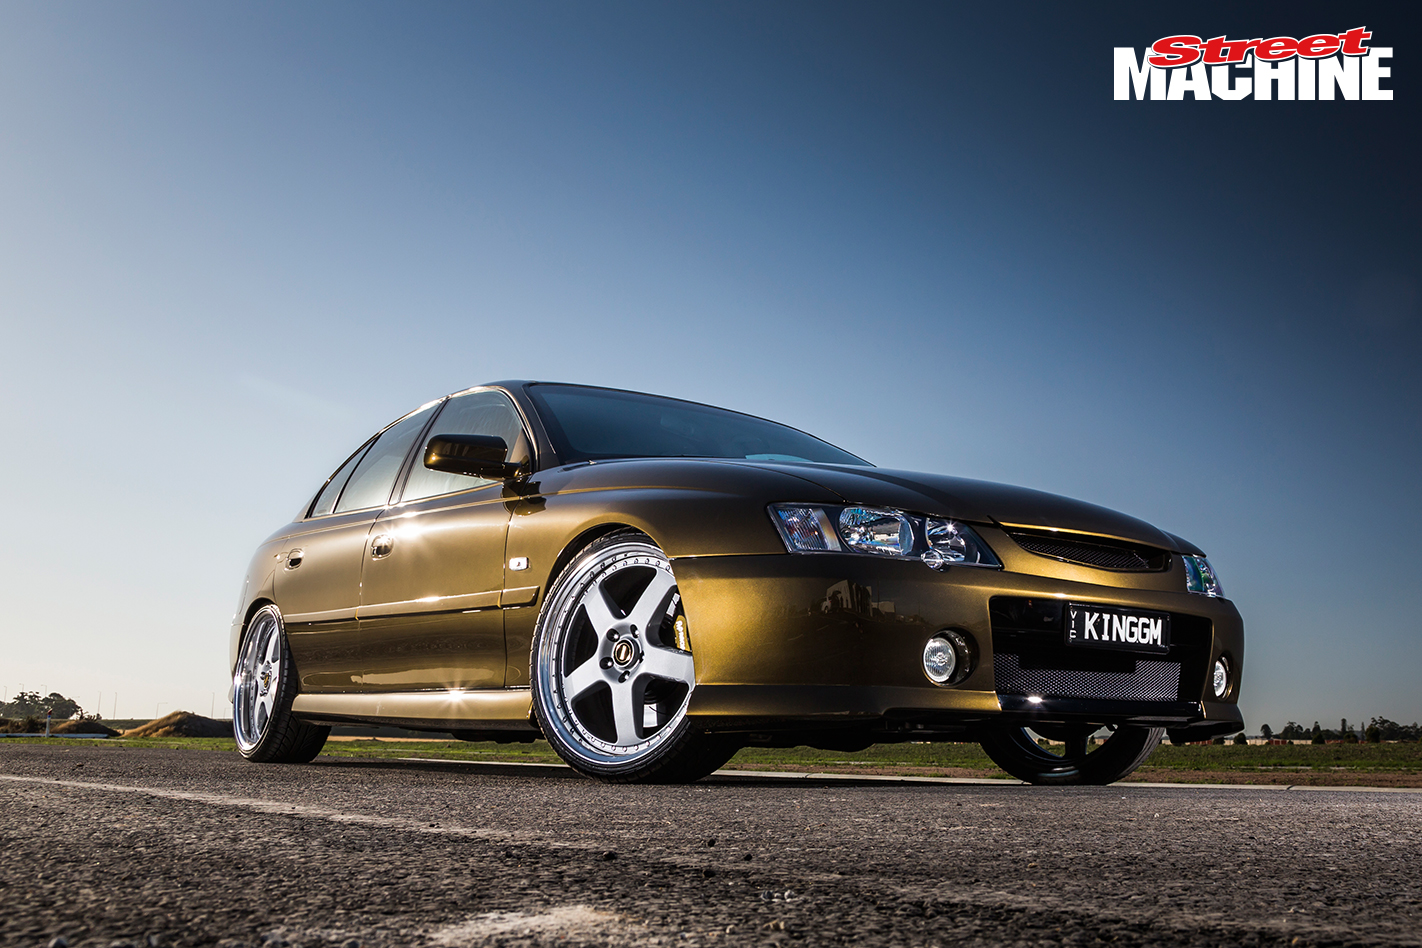 Turbo VY Commodore KINGGM 14 Nw